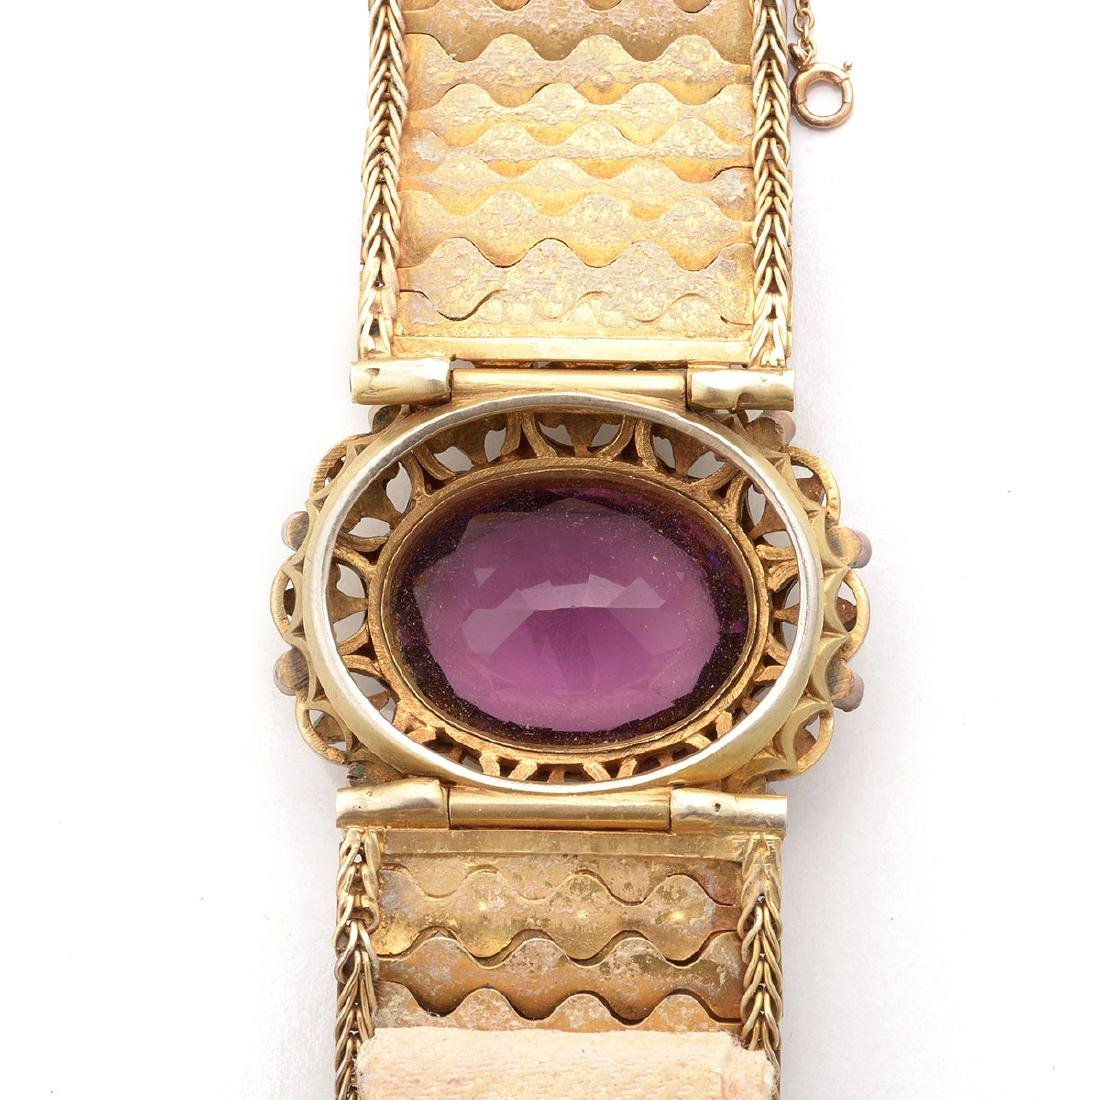 Hungarian Purple Glass, Seed Pearl, Enamel, Silver-Gilt - 5